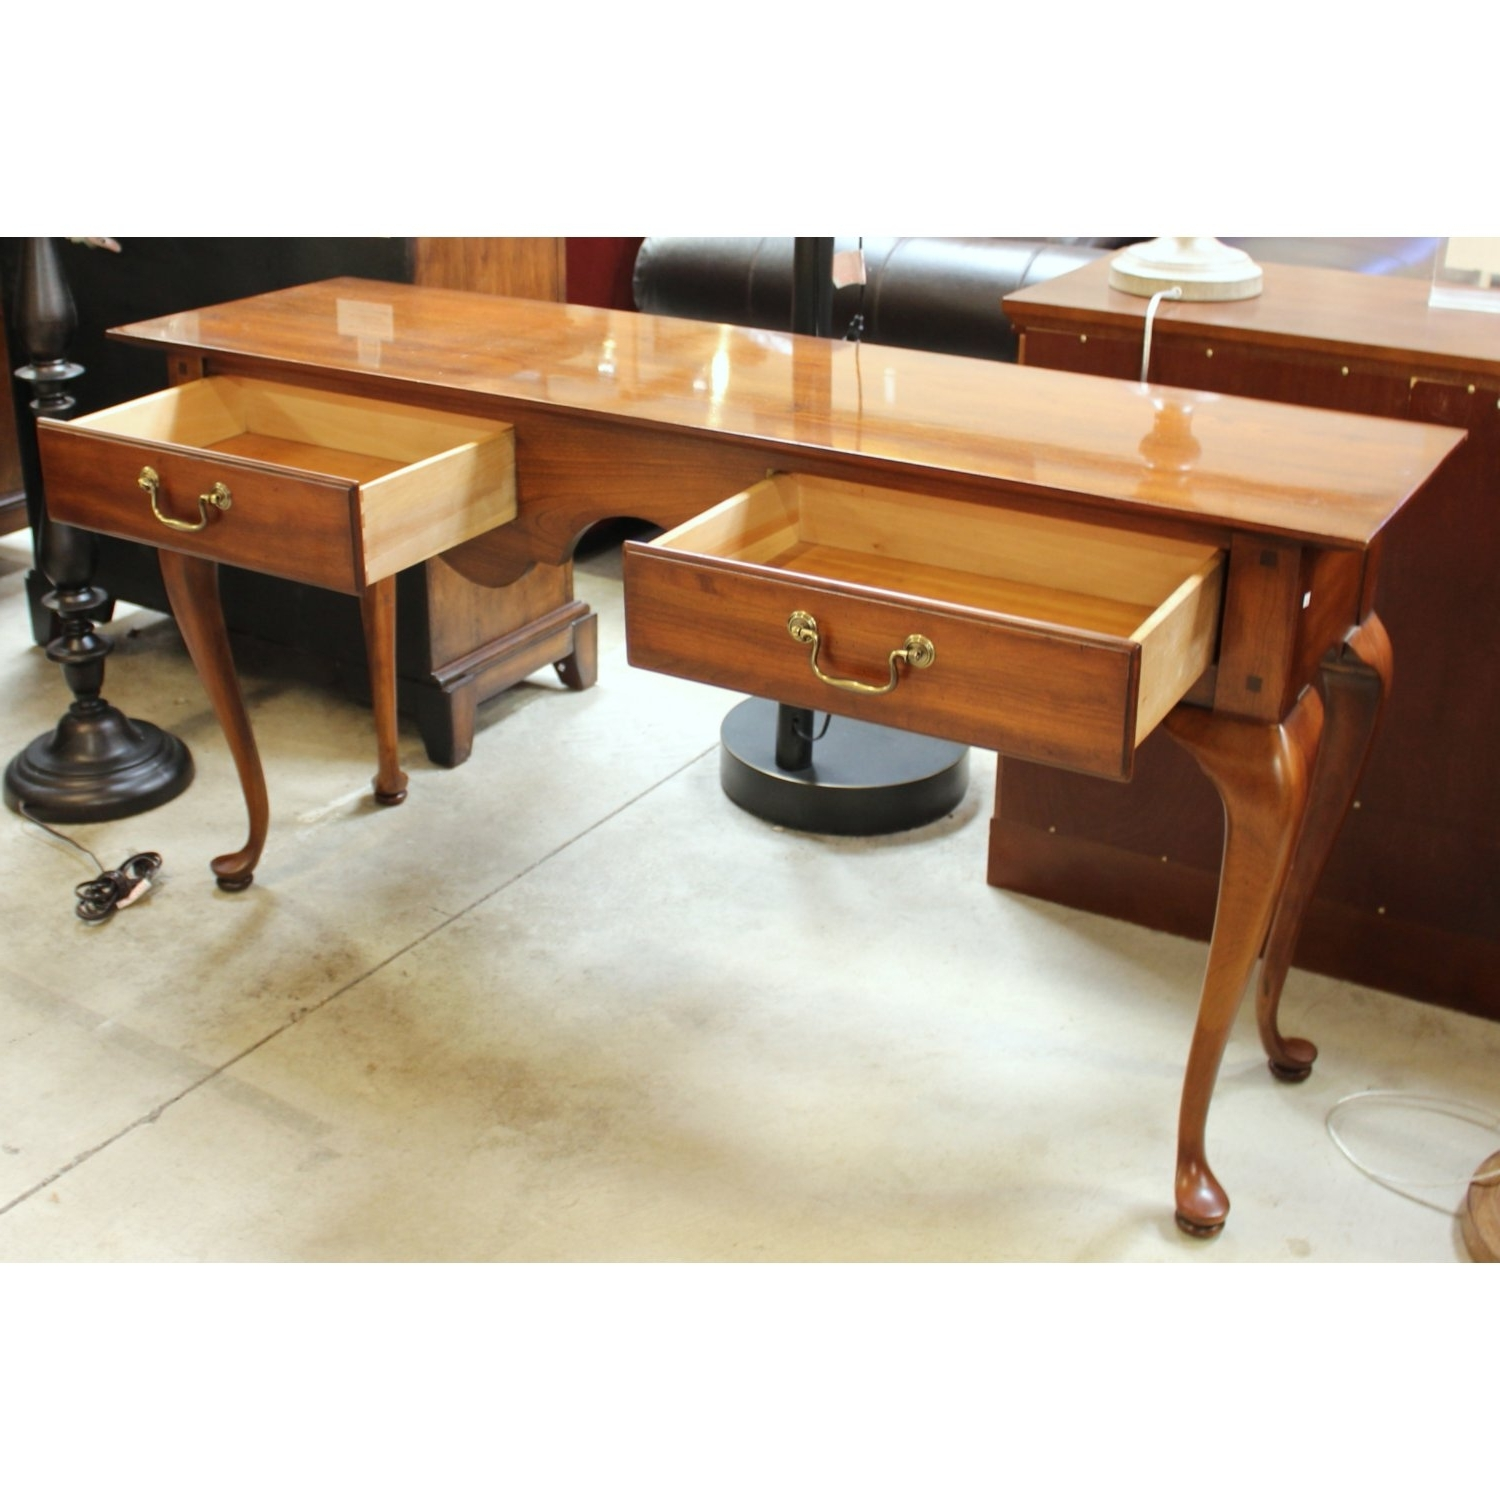 Magnificent Queen Anne Computer Desk Solid Wood Construction Teak For Well Known Teak Computer Desks (View 5 of 20)